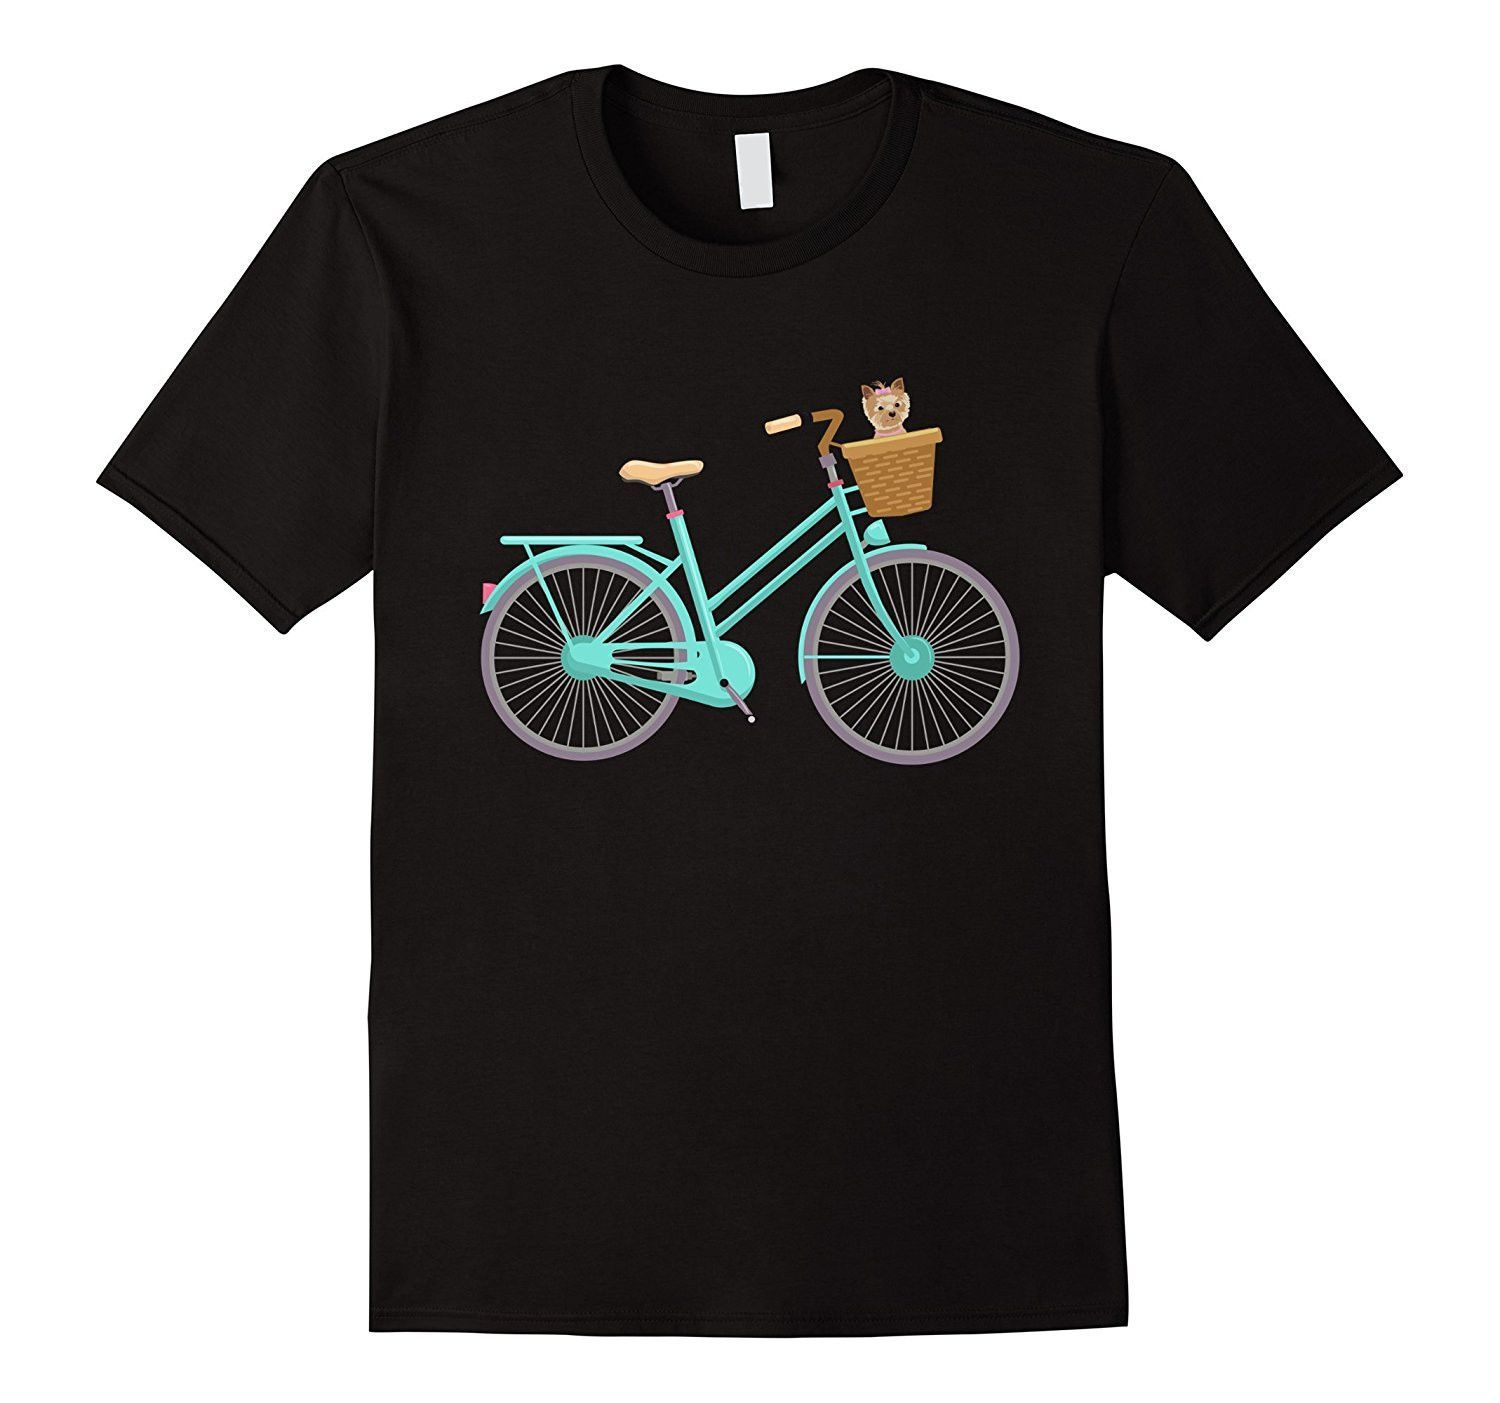 Antique Bike With Adorable Puppy In Basket T-Shirt